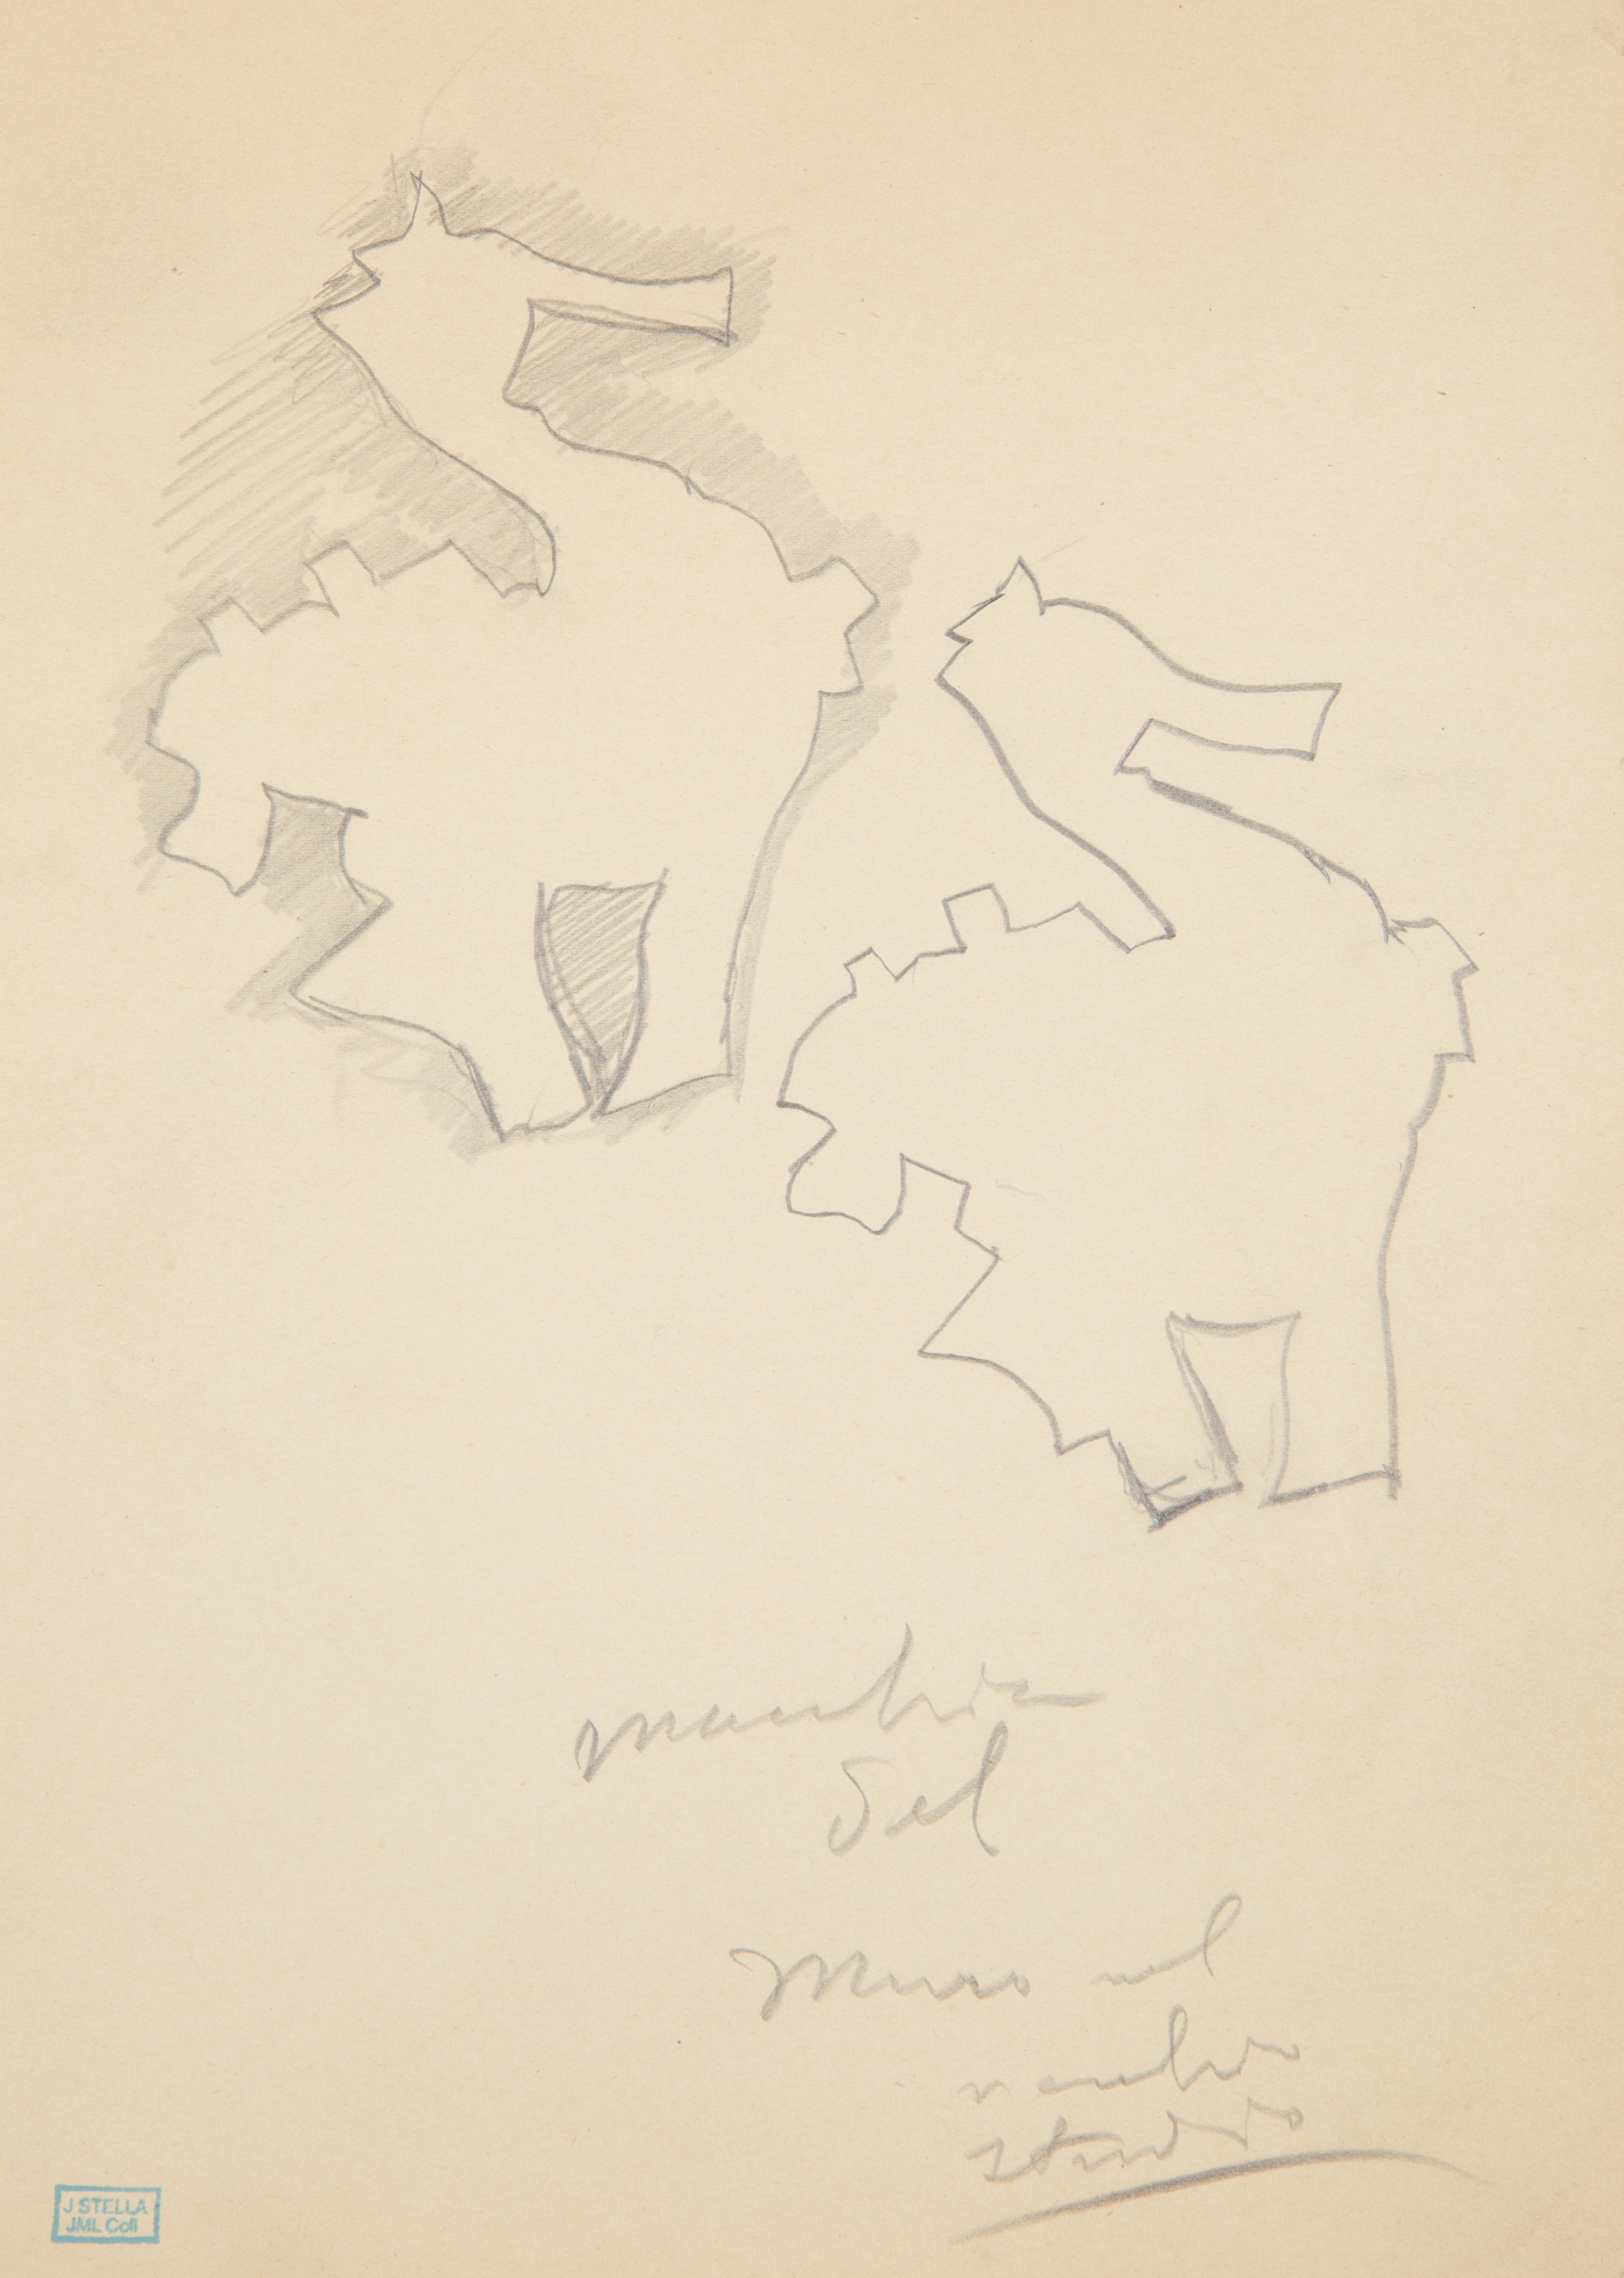 A PAIR OF DRAWINGS BY JOSEPH STELLA (AMERICAN 1877-1946) - Image 3 of 4